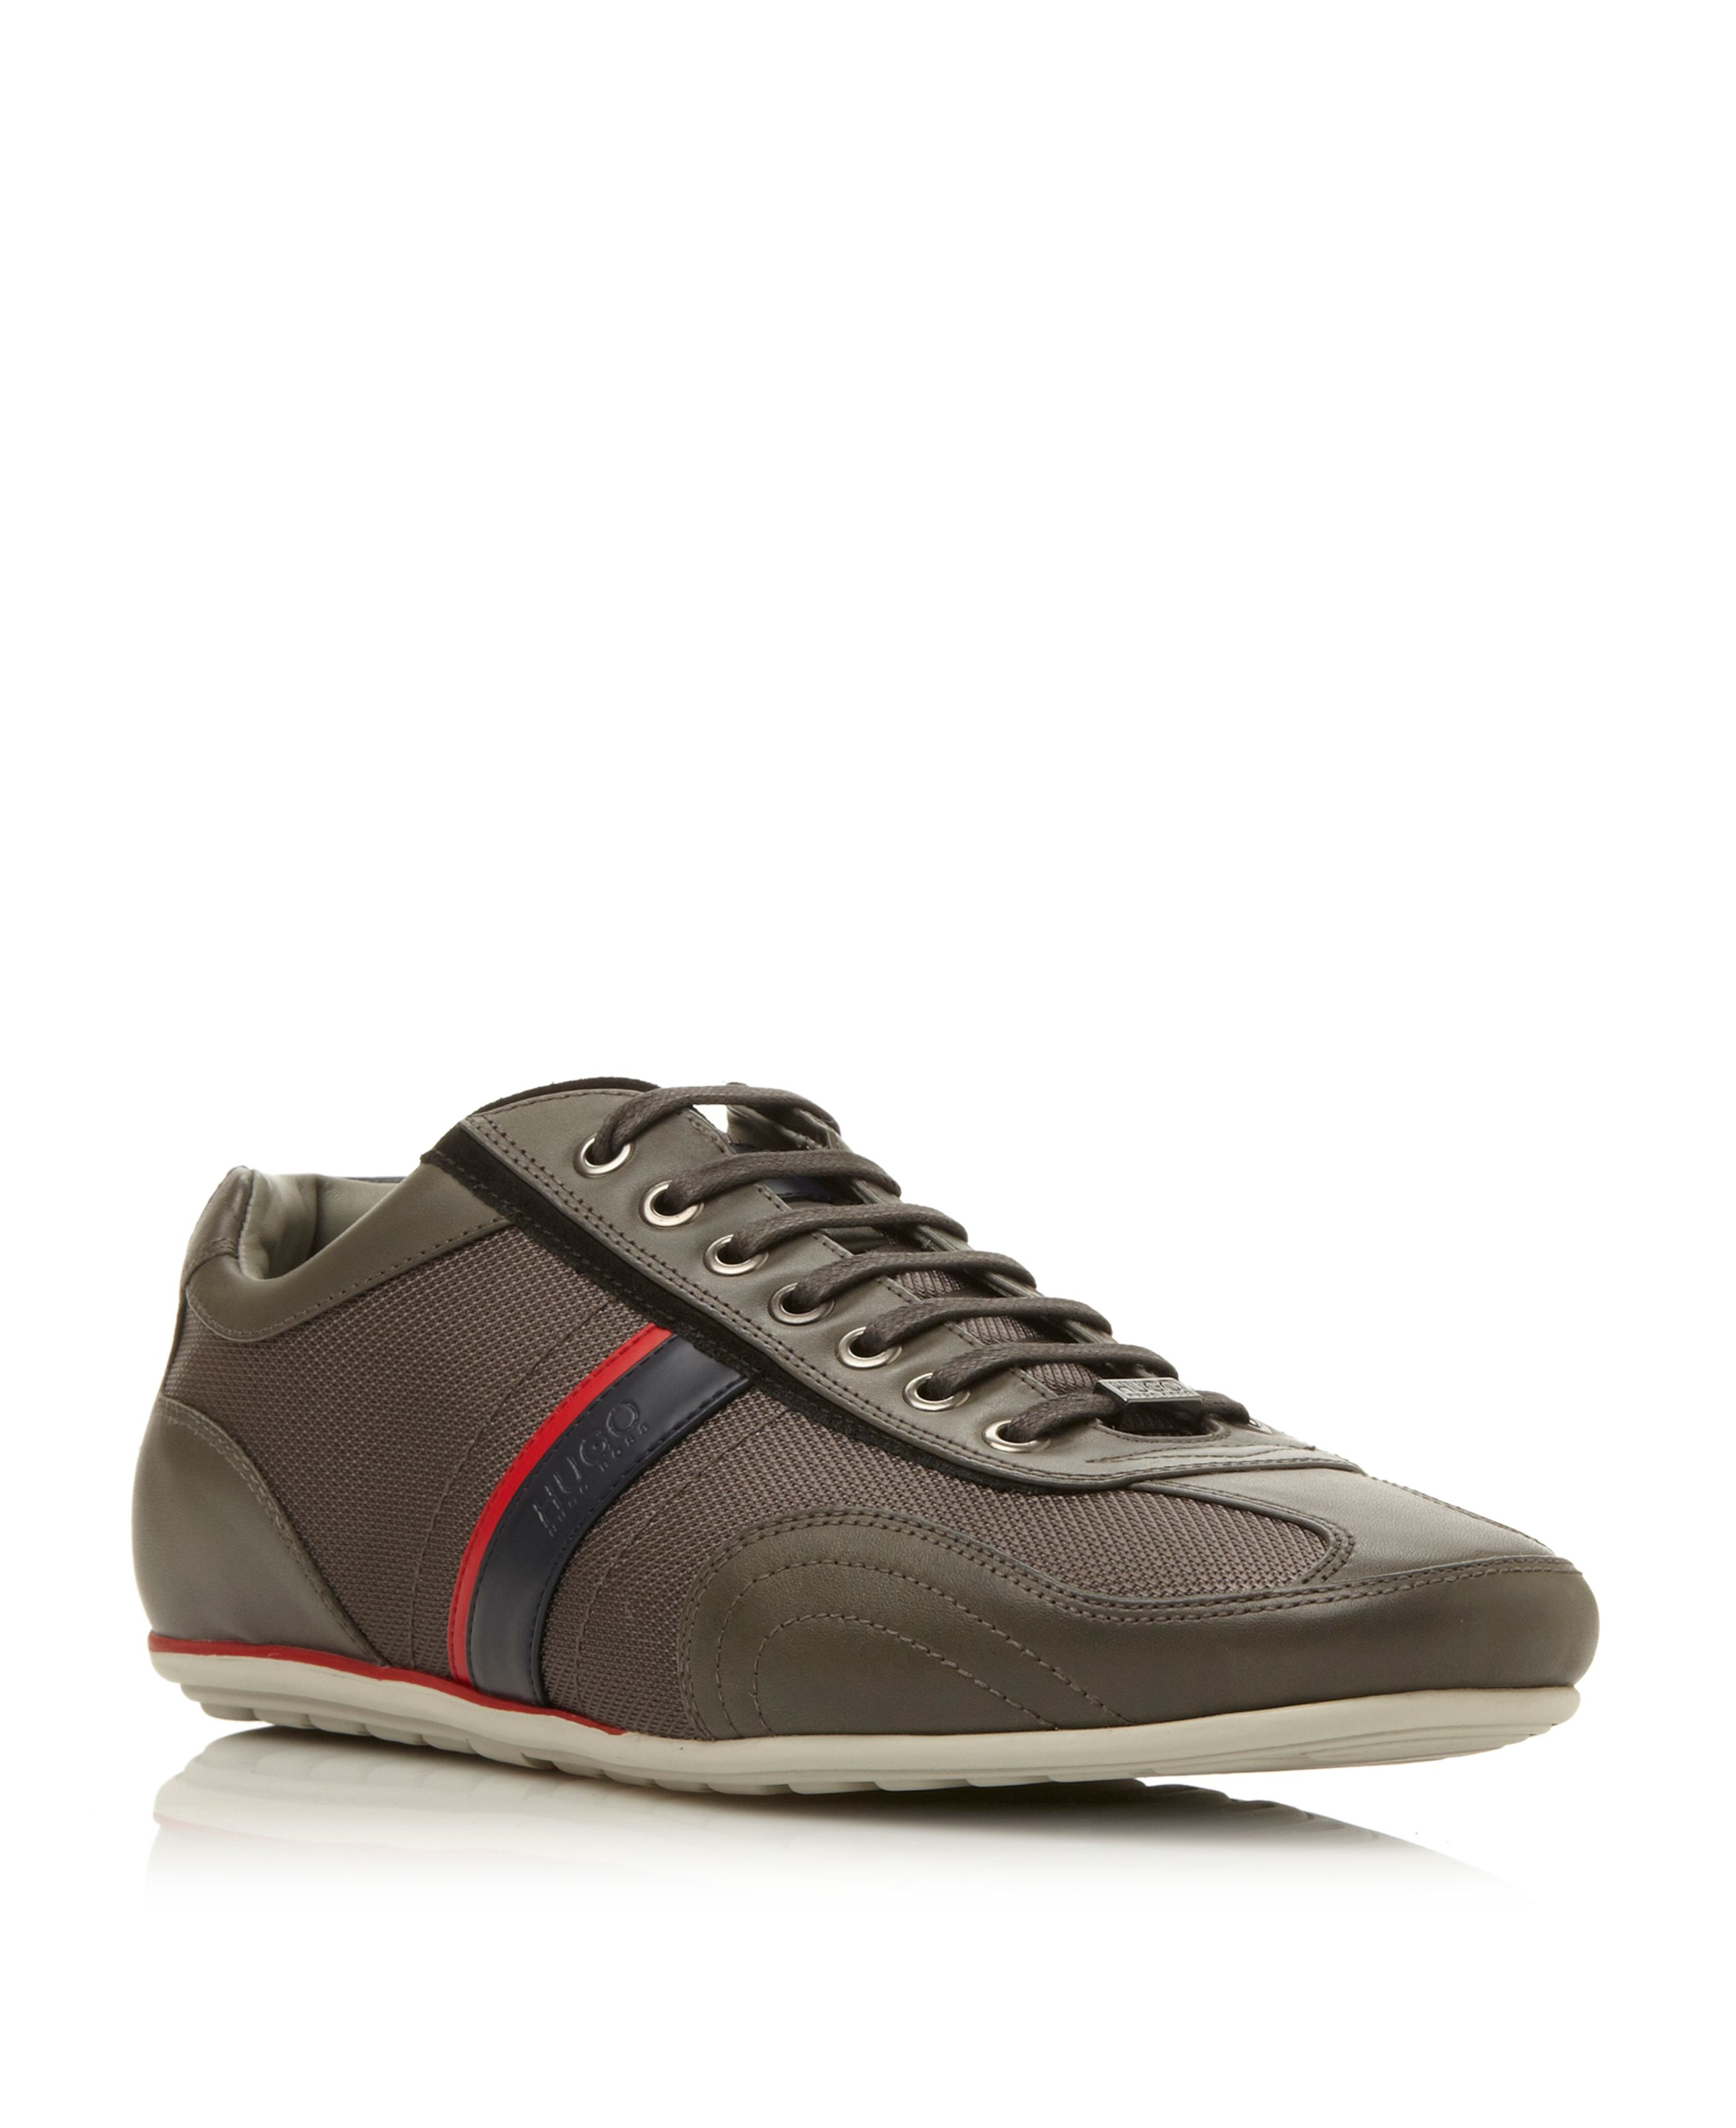 Thatoz 2 tone side stripe lace up trainers